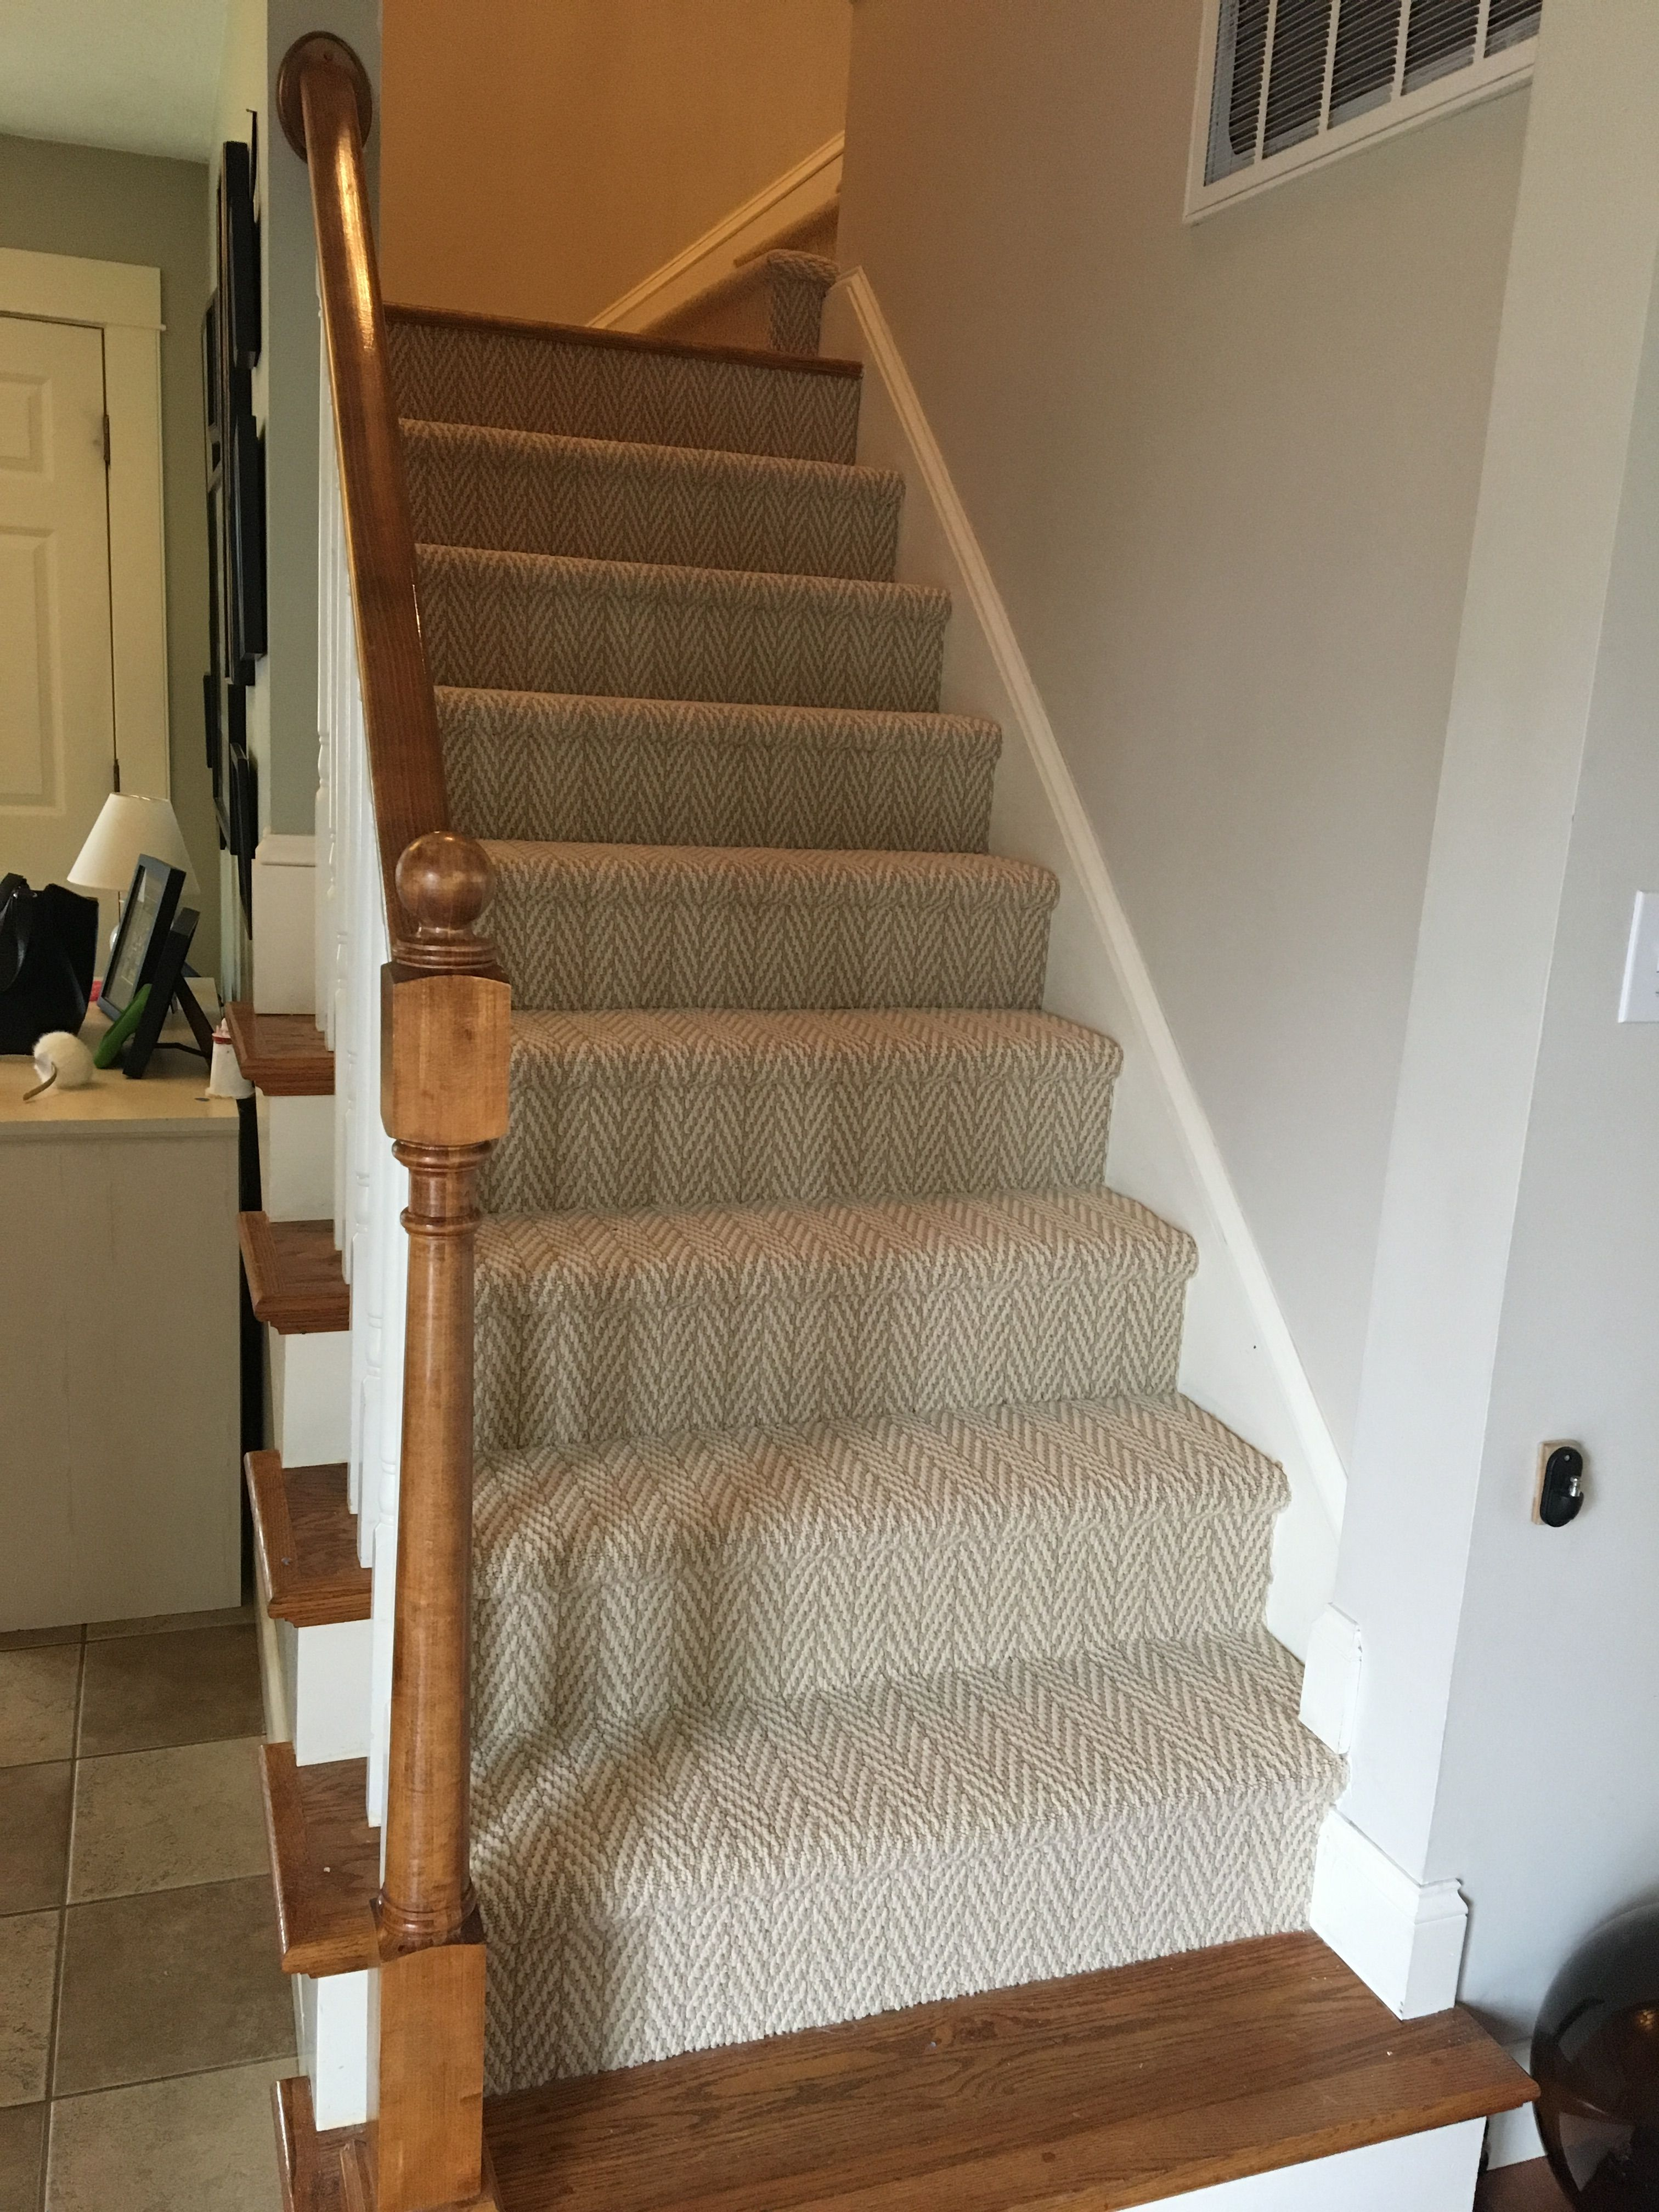 Lowes Stainmaster Apparent Beauty Whisper Berber Carpet Berber | Berber Carpet For Stairs | Decorative | Waterfall Stair | Sophisticated | Durable | Master Bedroom